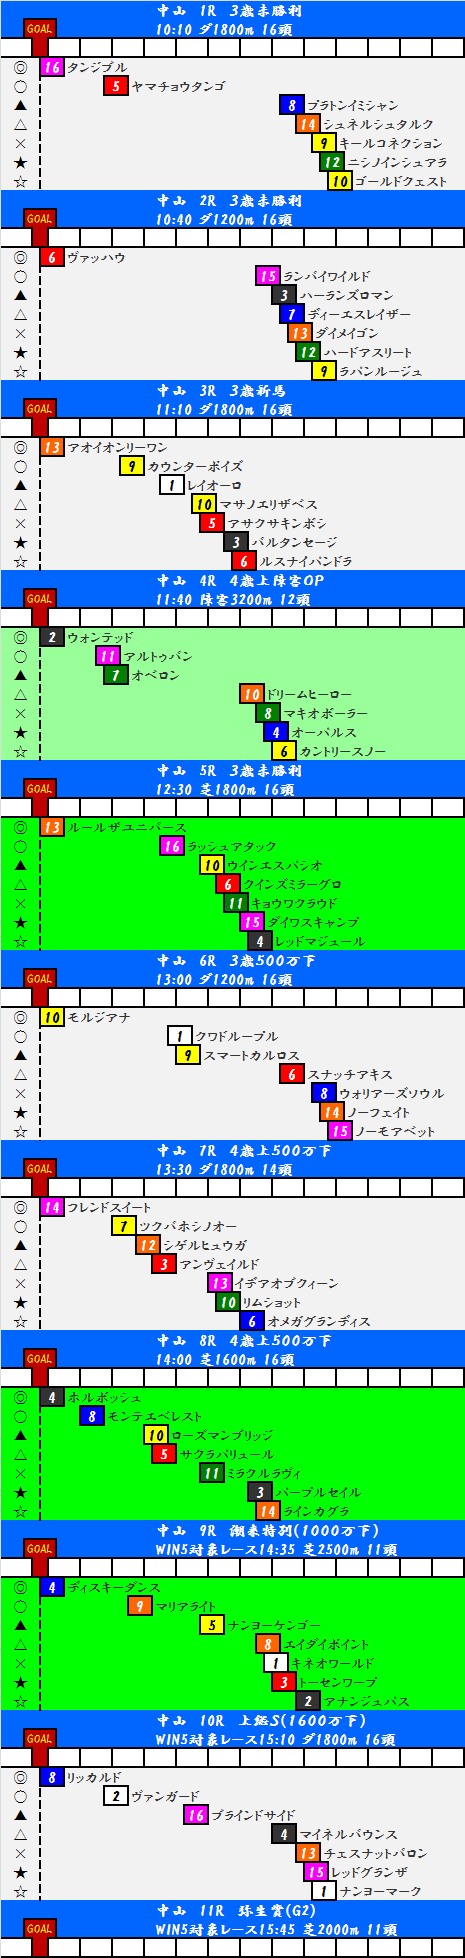 2015030801.png